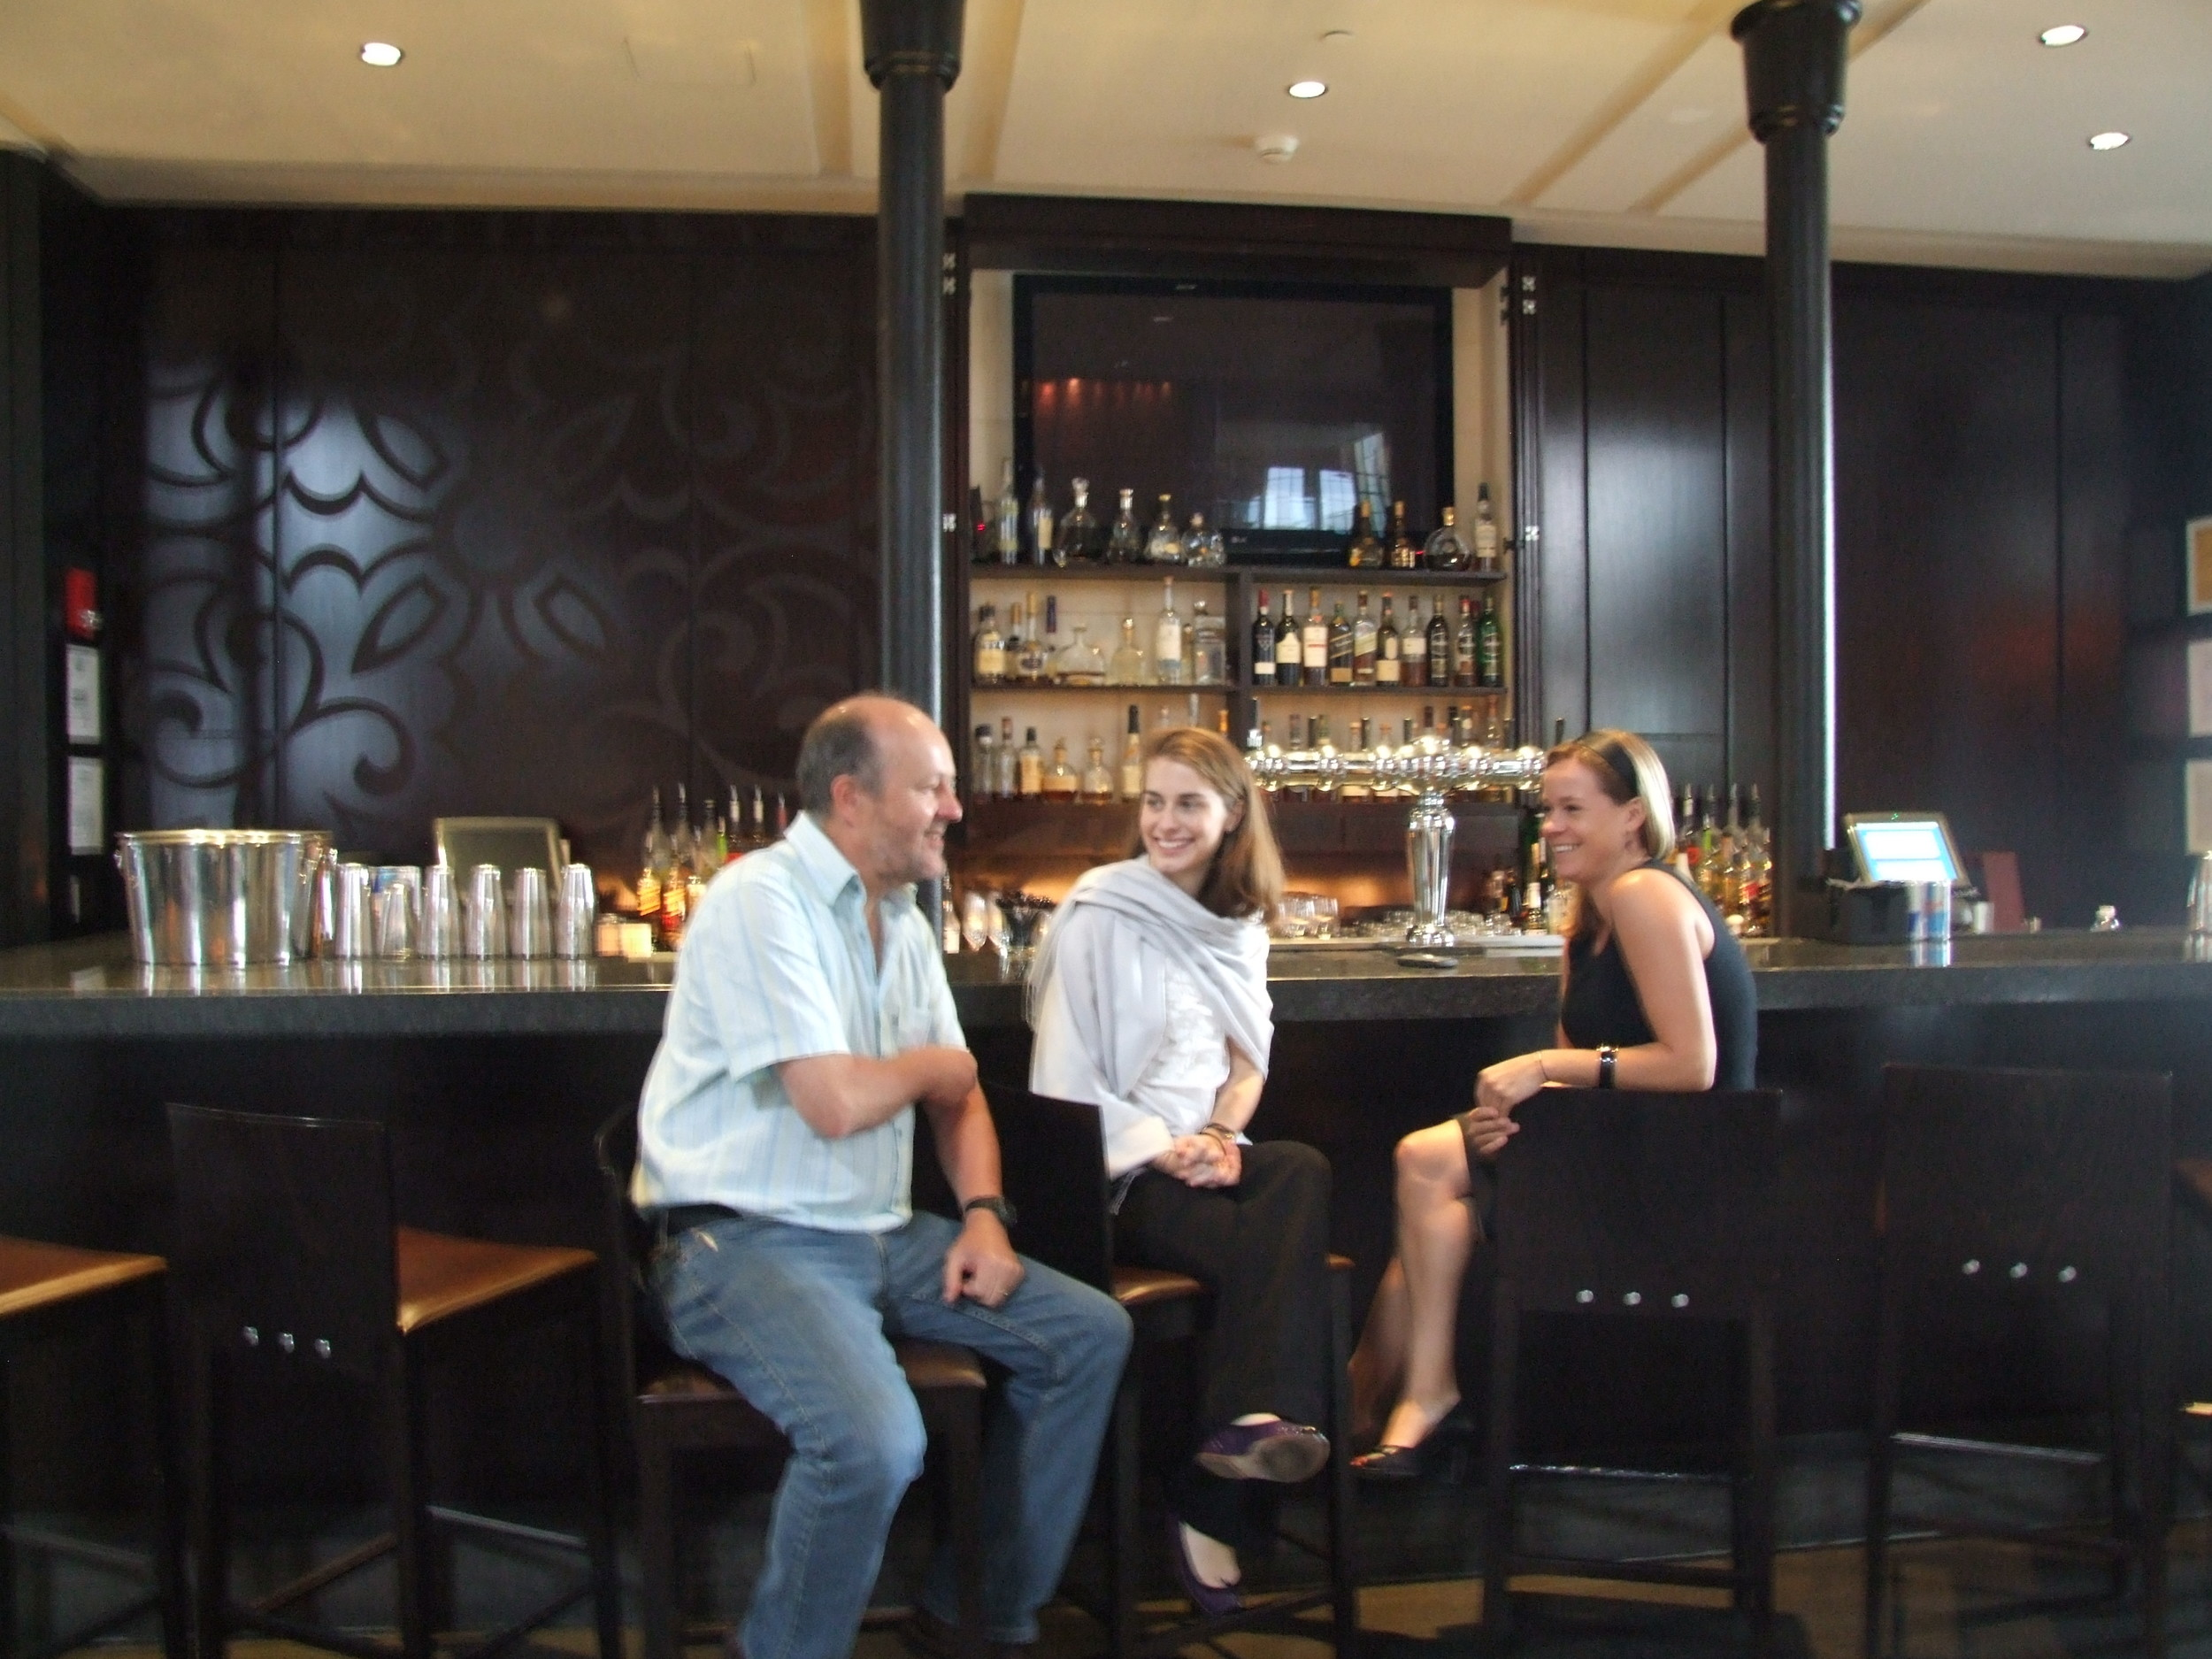 Earl Storey interviews Manager of The Liberty Hotel (Boston) for Irish News article